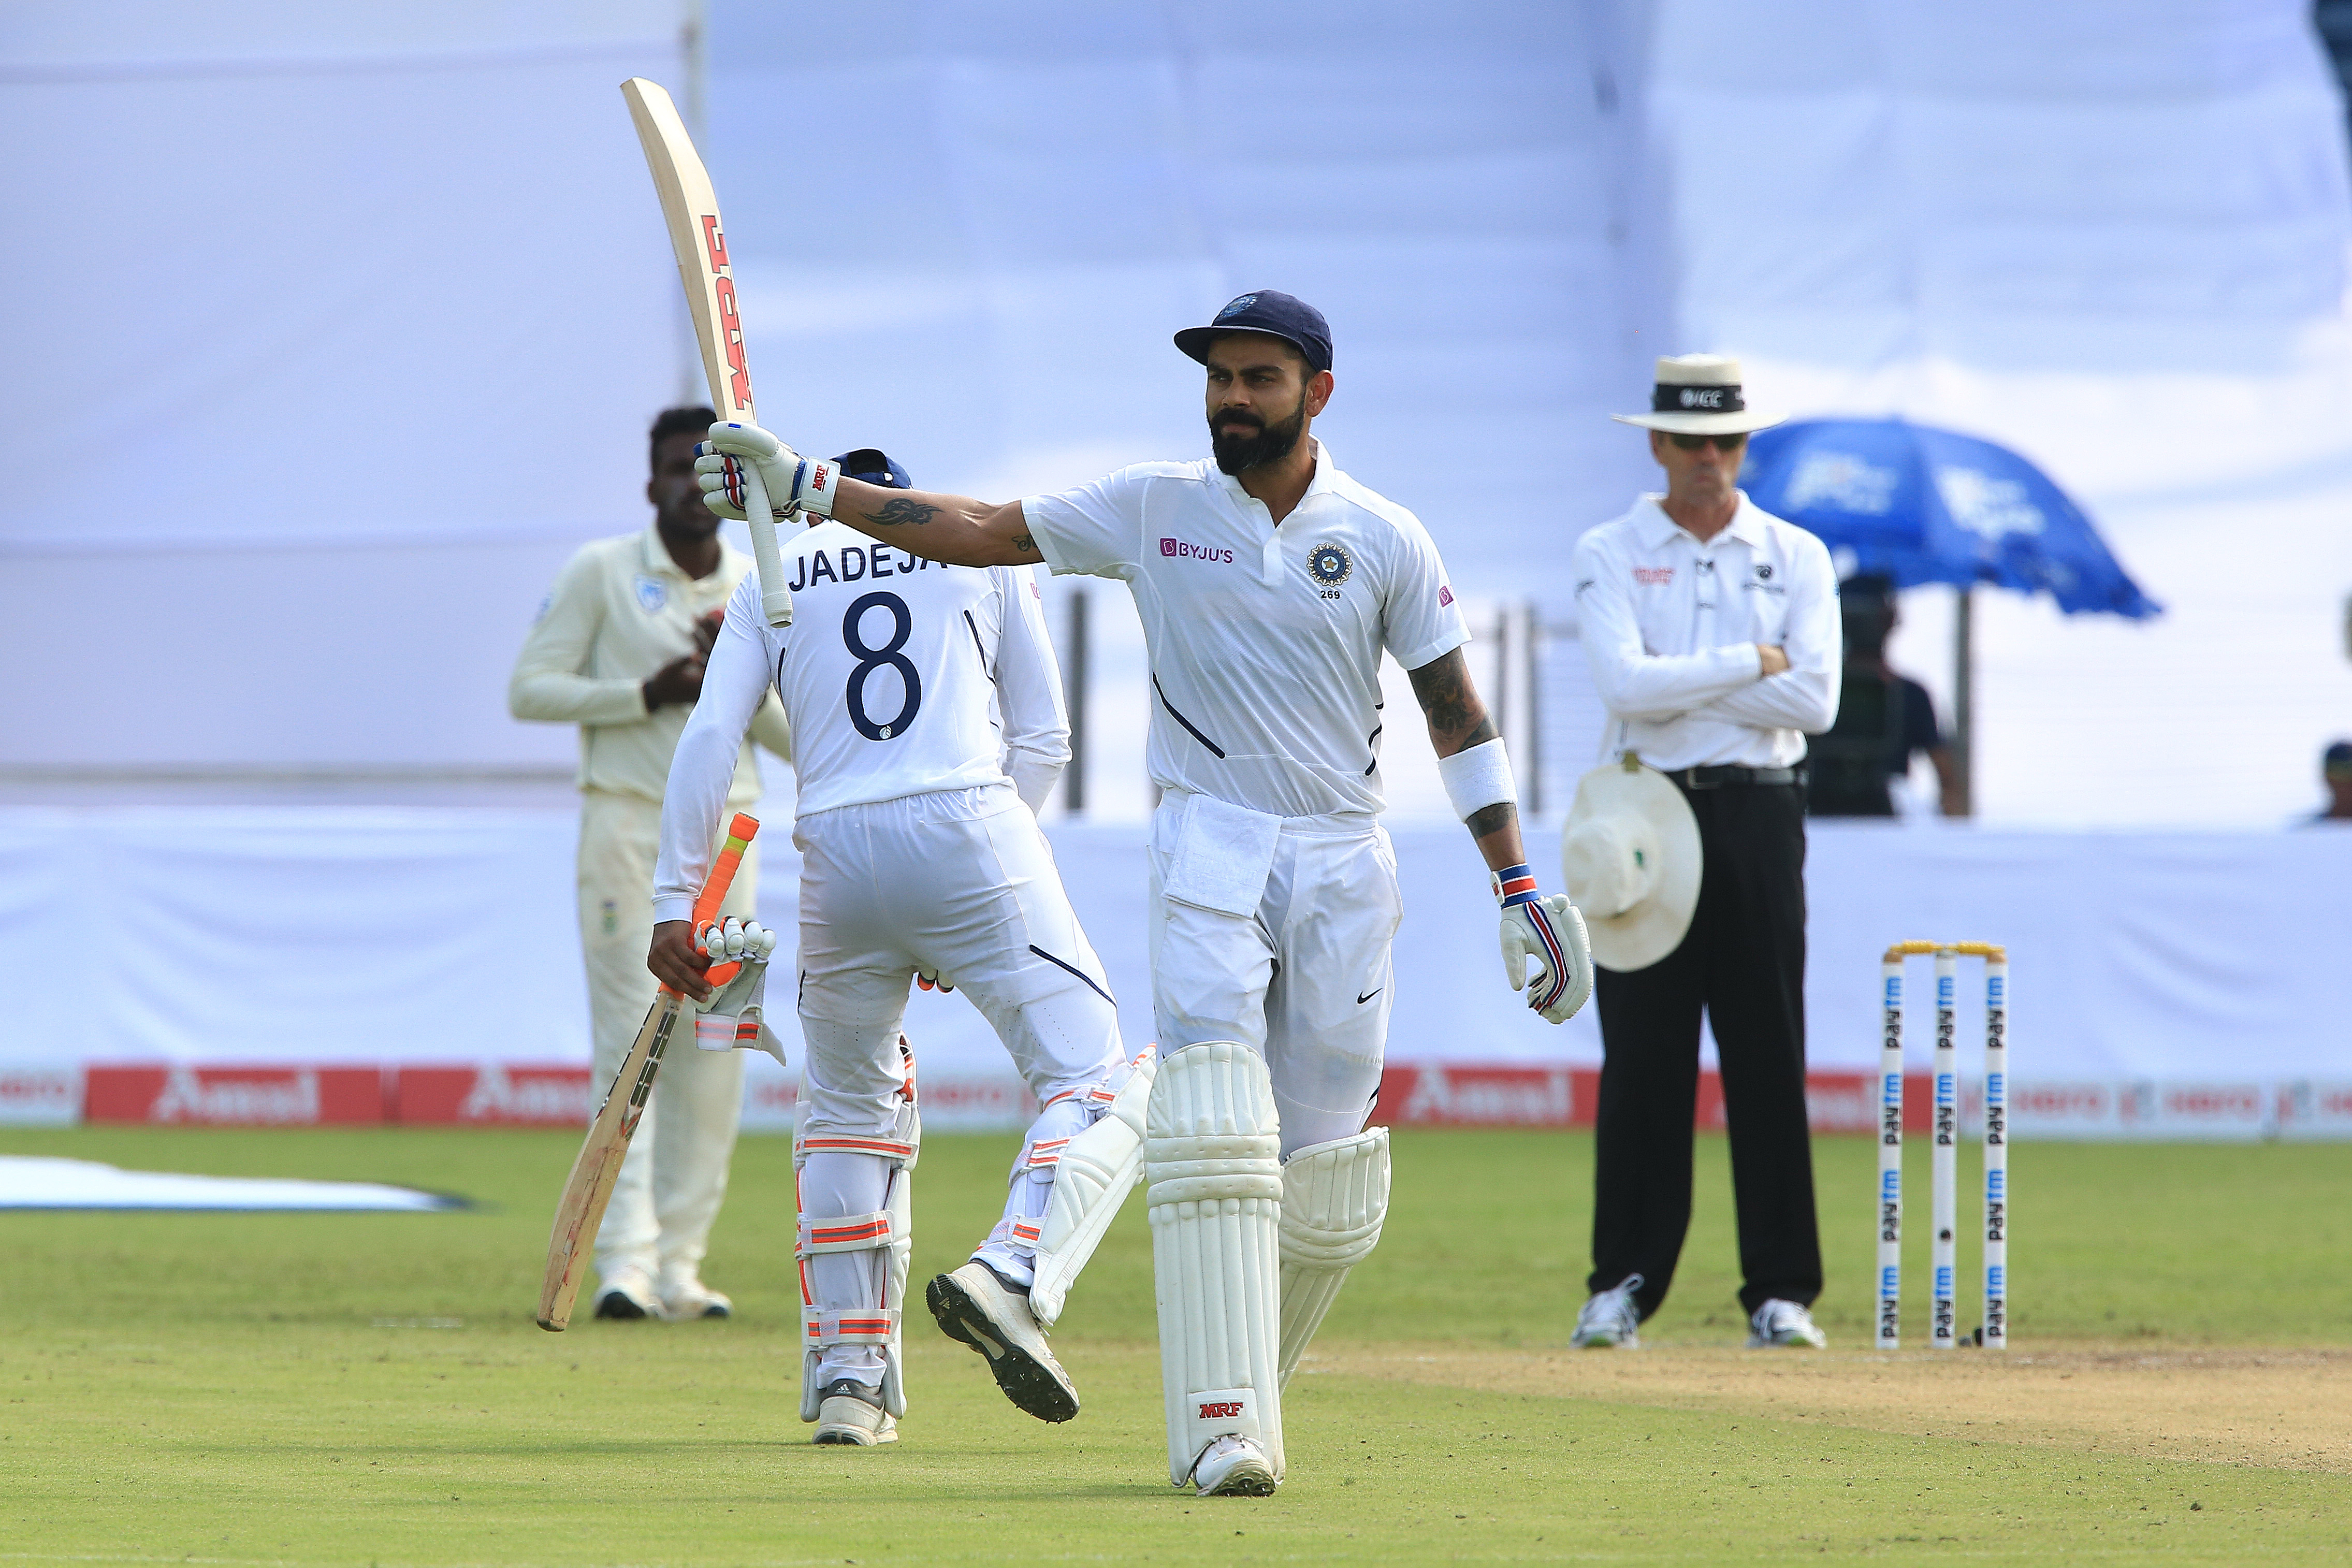 Kohli showcases brilliance before seamers dent South Africa further